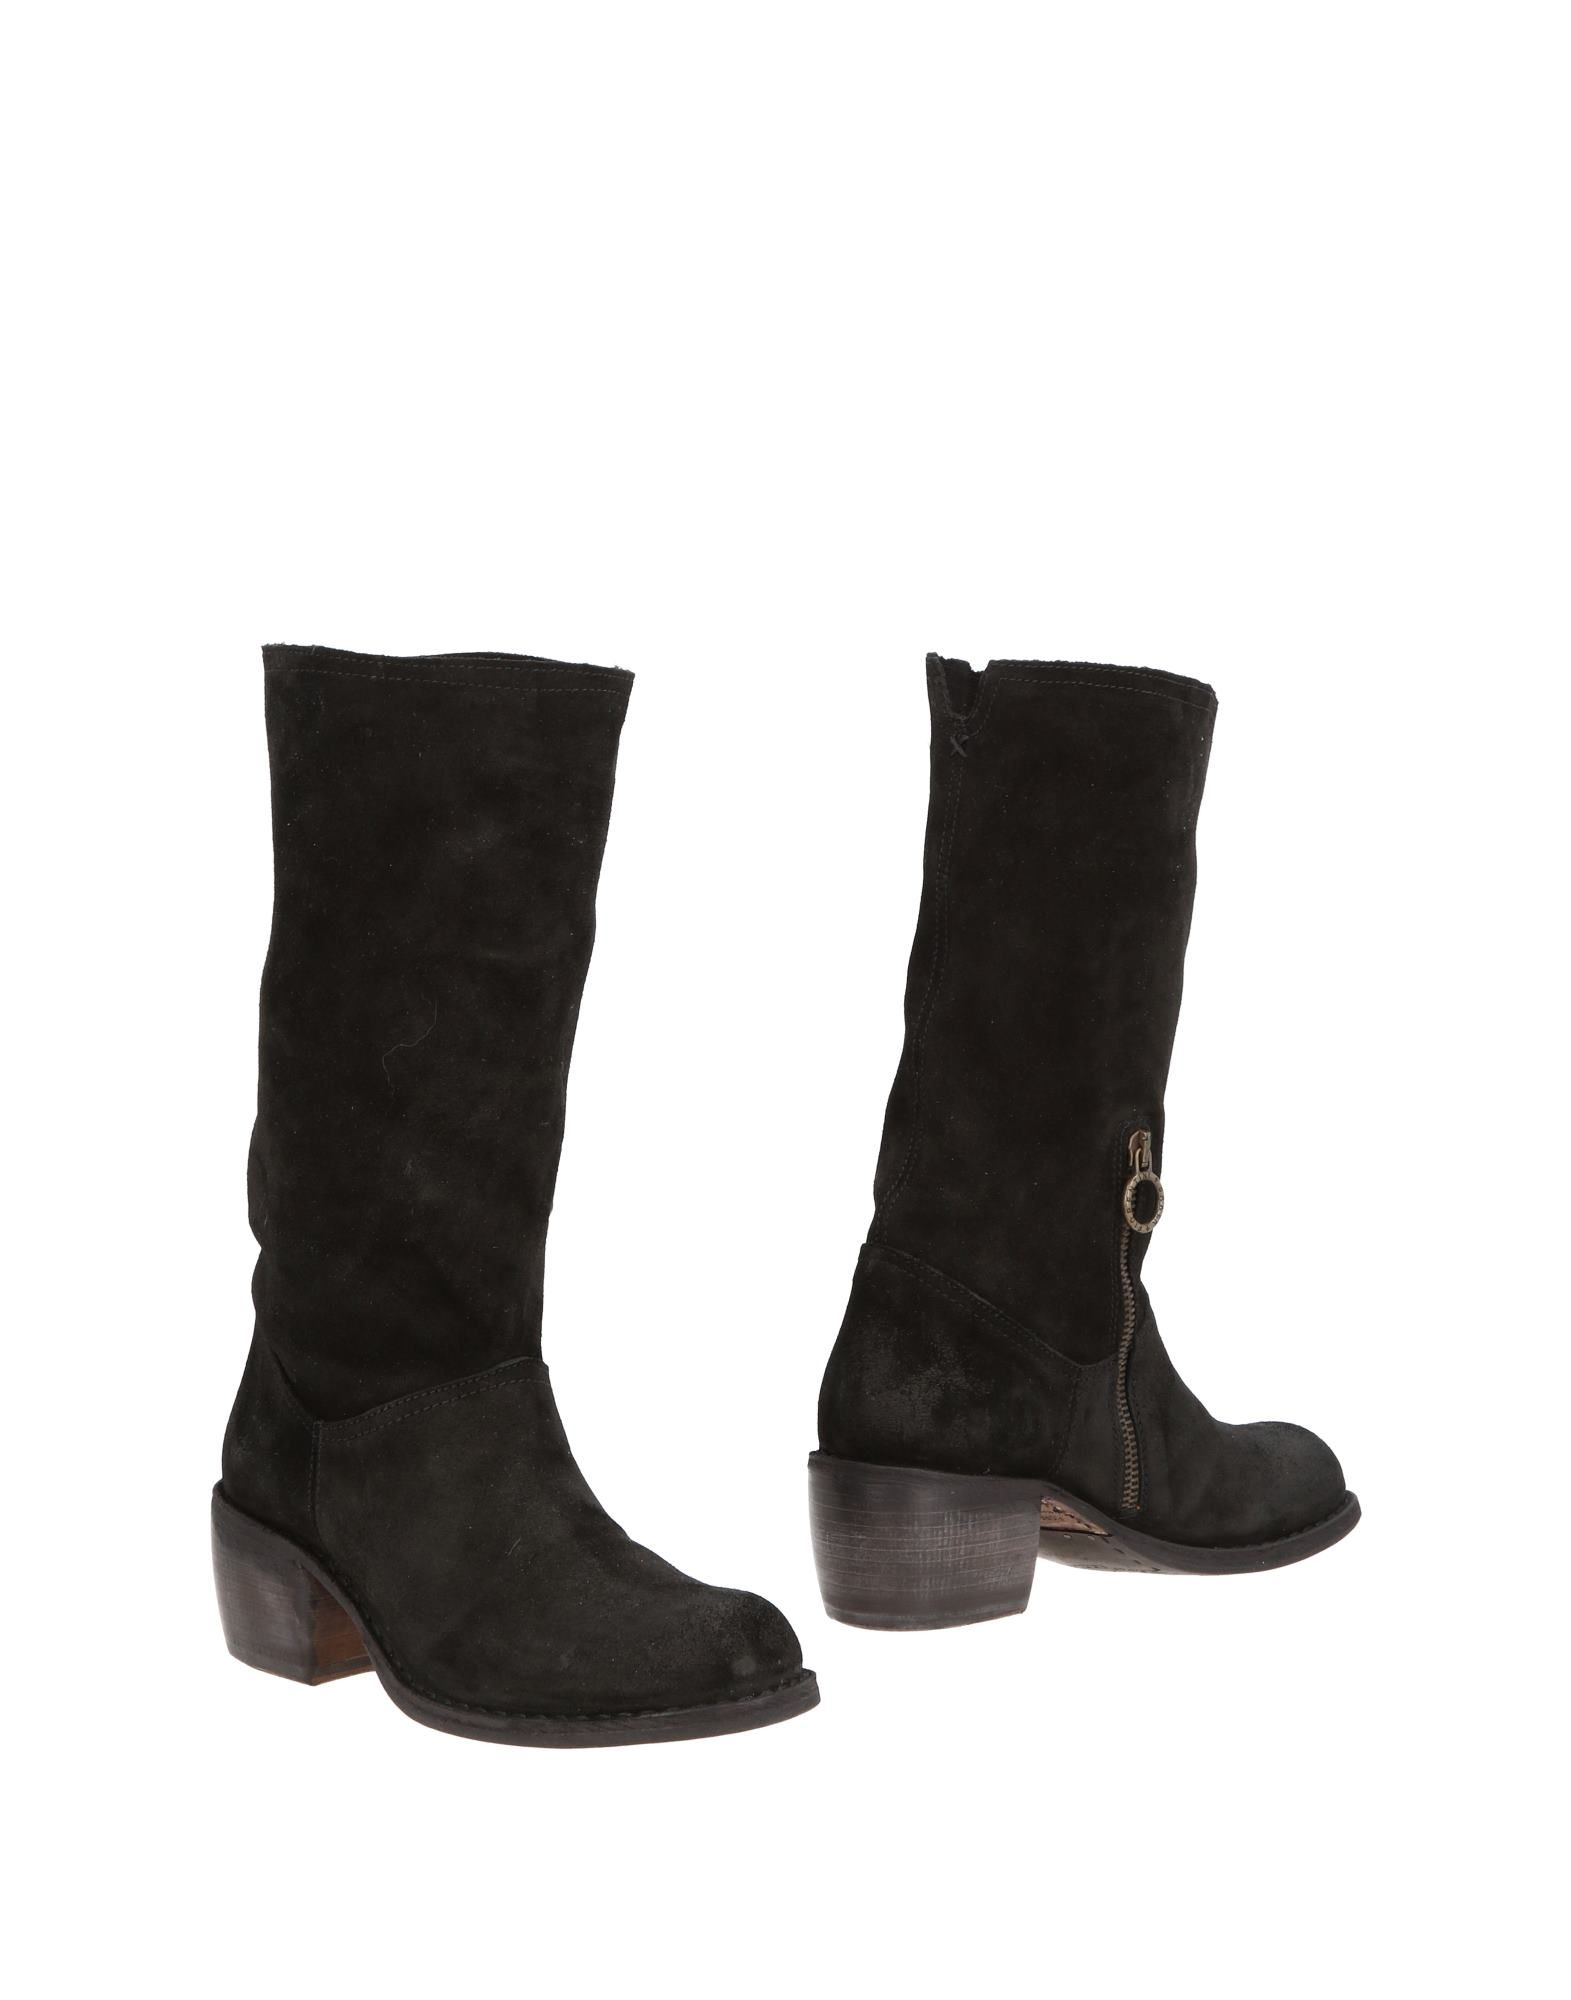 Fiorentini+Baker Boots - Women Fiorentini+Baker Boots online on 11499500NM  United Kingdom - 11499500NM on 020526